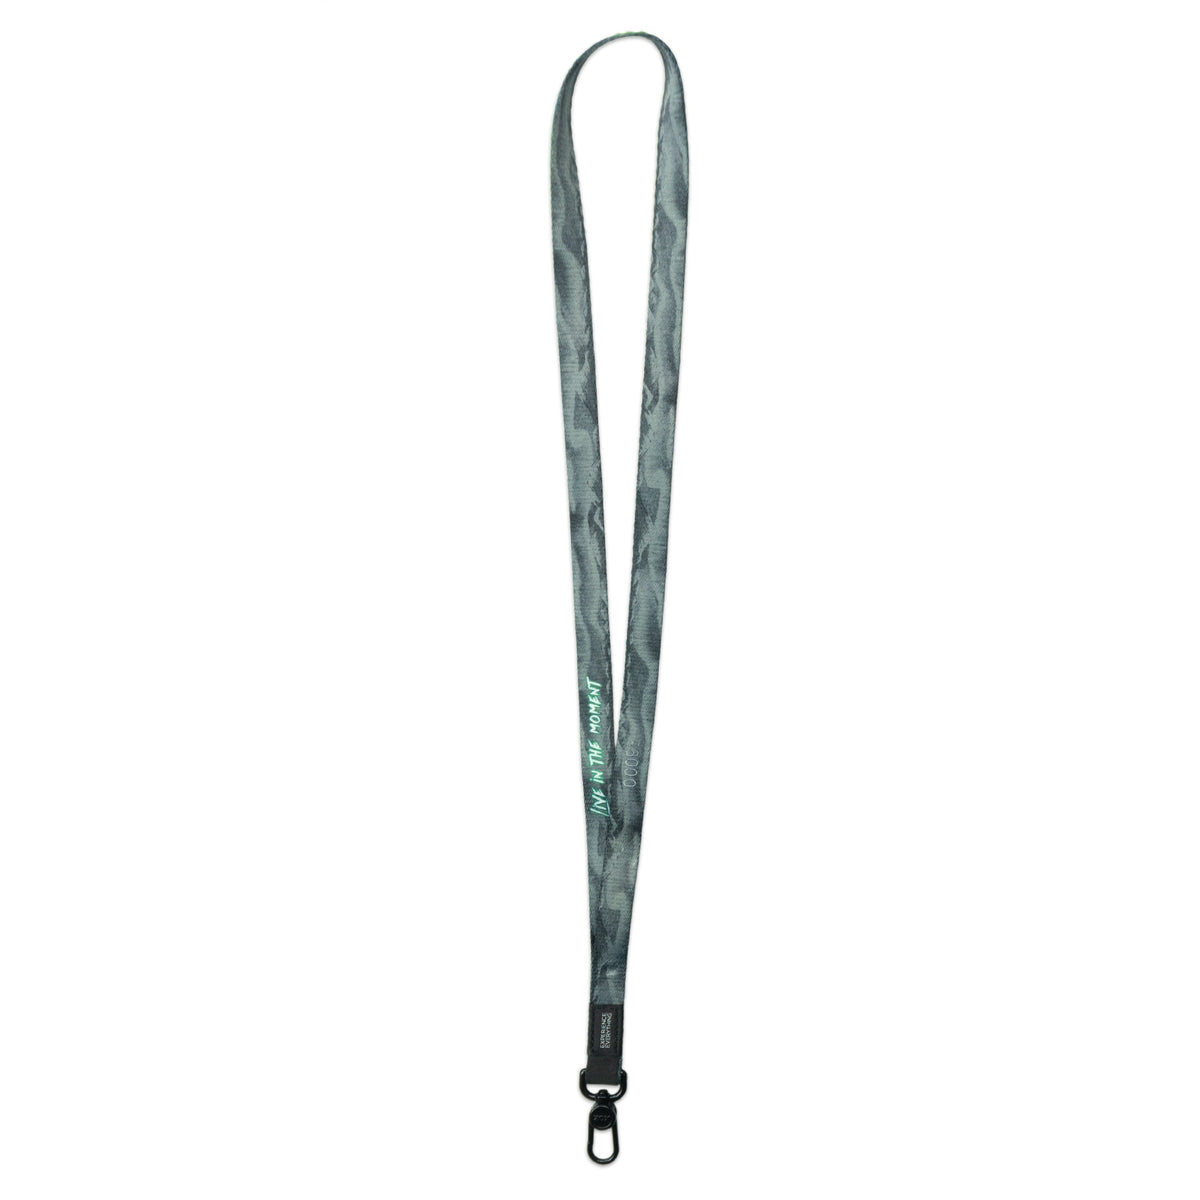 A product image of a ZOX lanyard showing the back of the design with a black colored metal clip. The lanyard is called and says Live In The Moment and the design is a grayscale version of the front design which is the northern lights